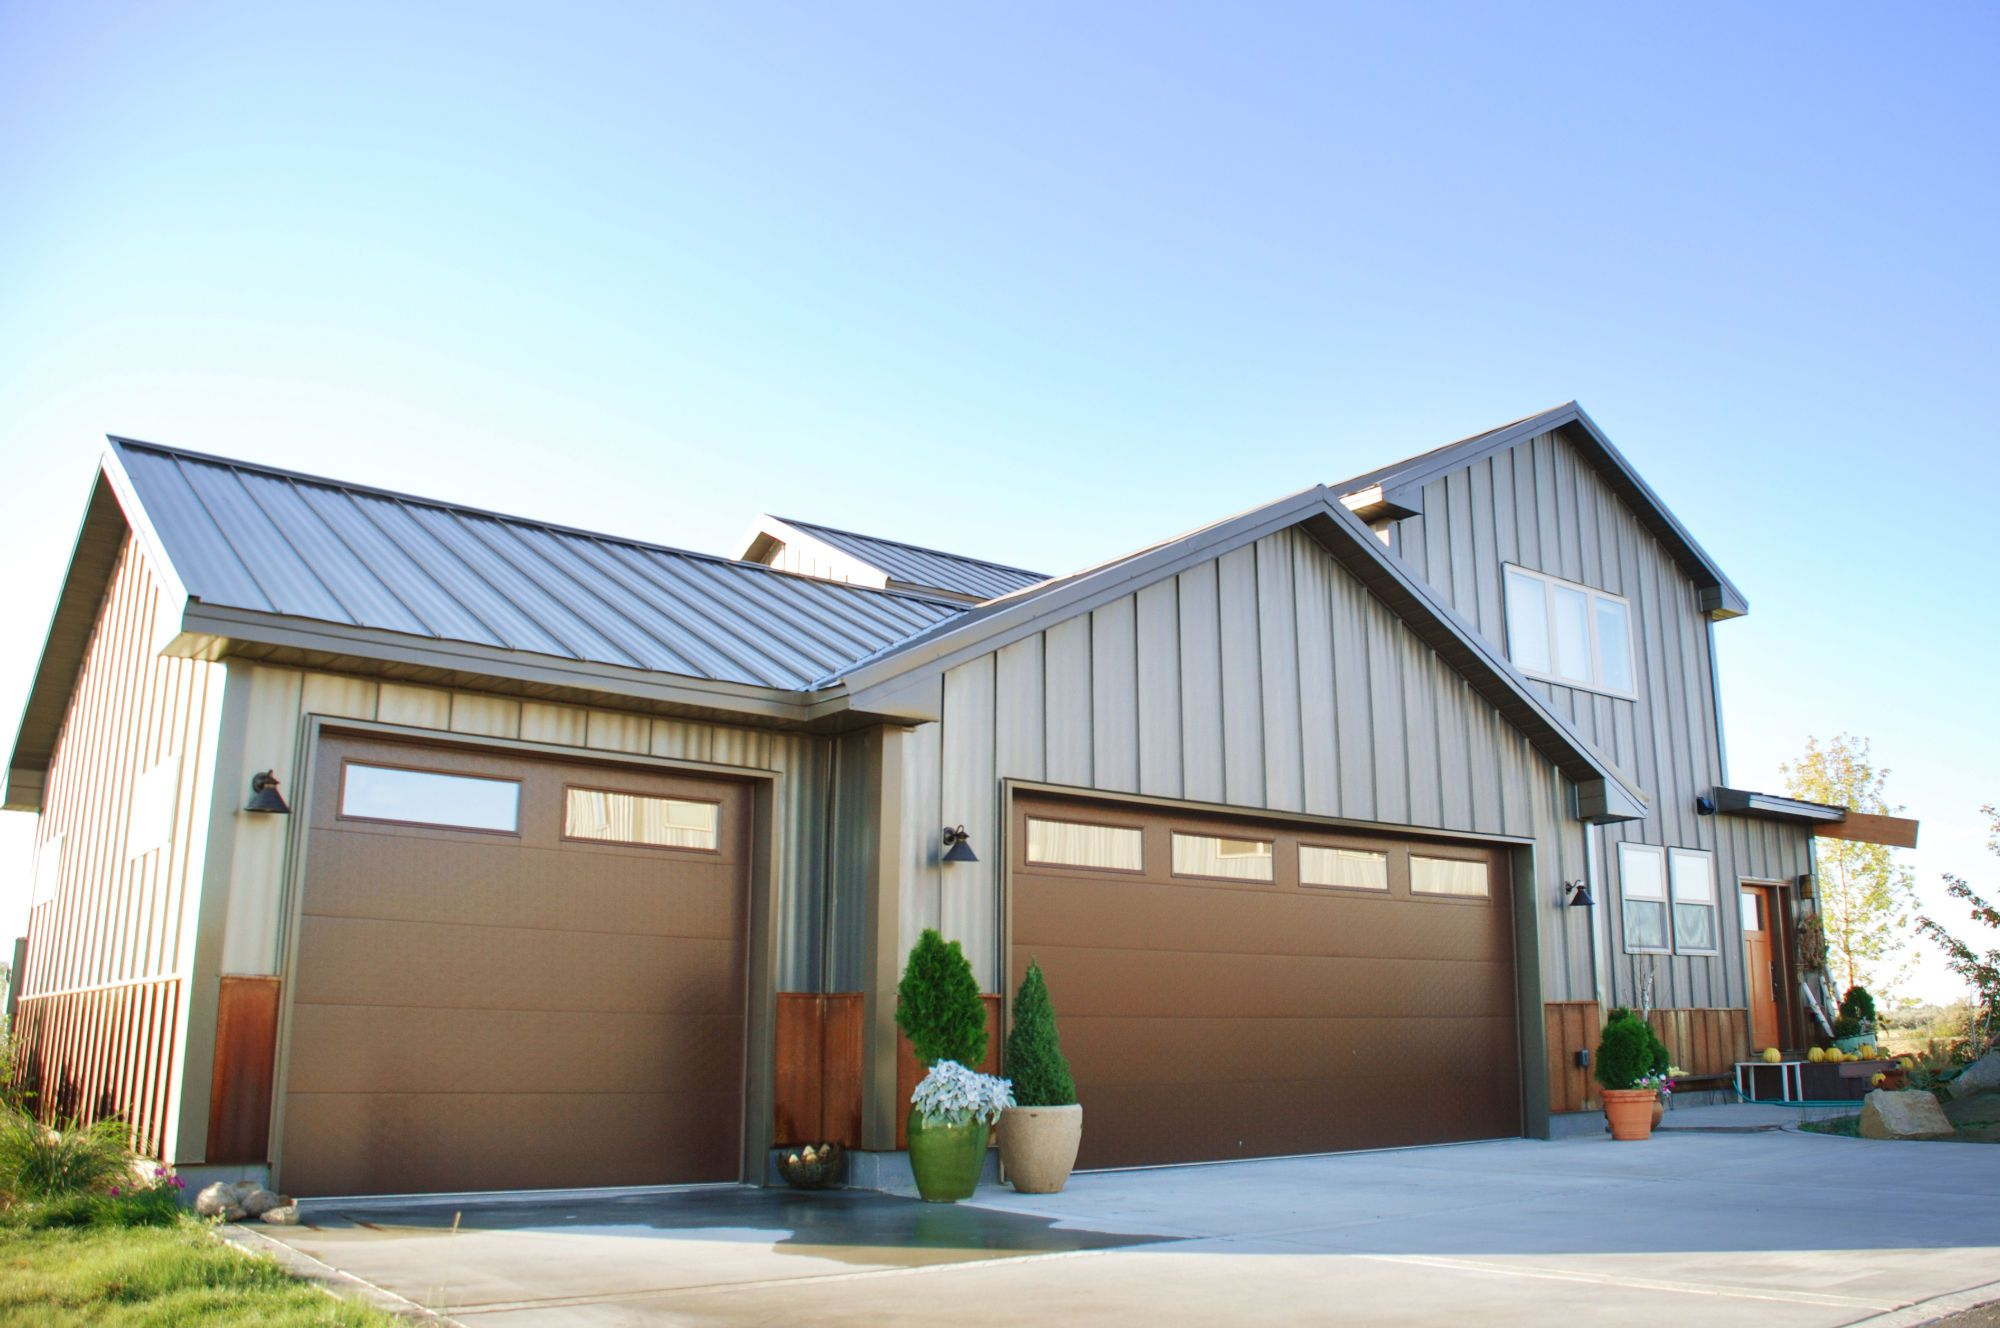 Steel Siding Arrow Exterior Design Madison Wisconsin Commercial Residential Contractor